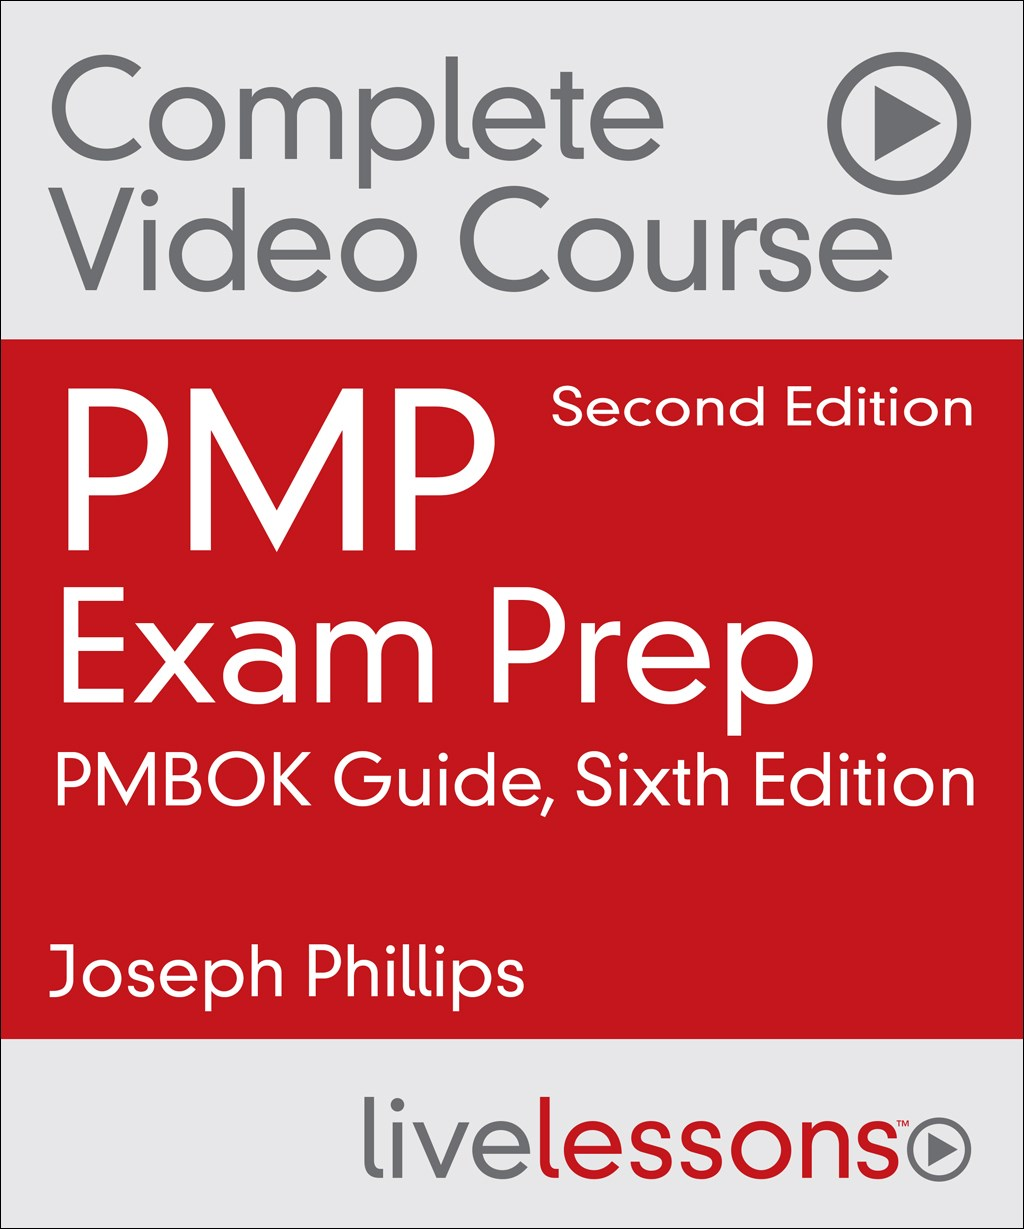 PMP Exam Prep Complete Video Course and Practice Test: PMBOK Guide, Sixth Edition